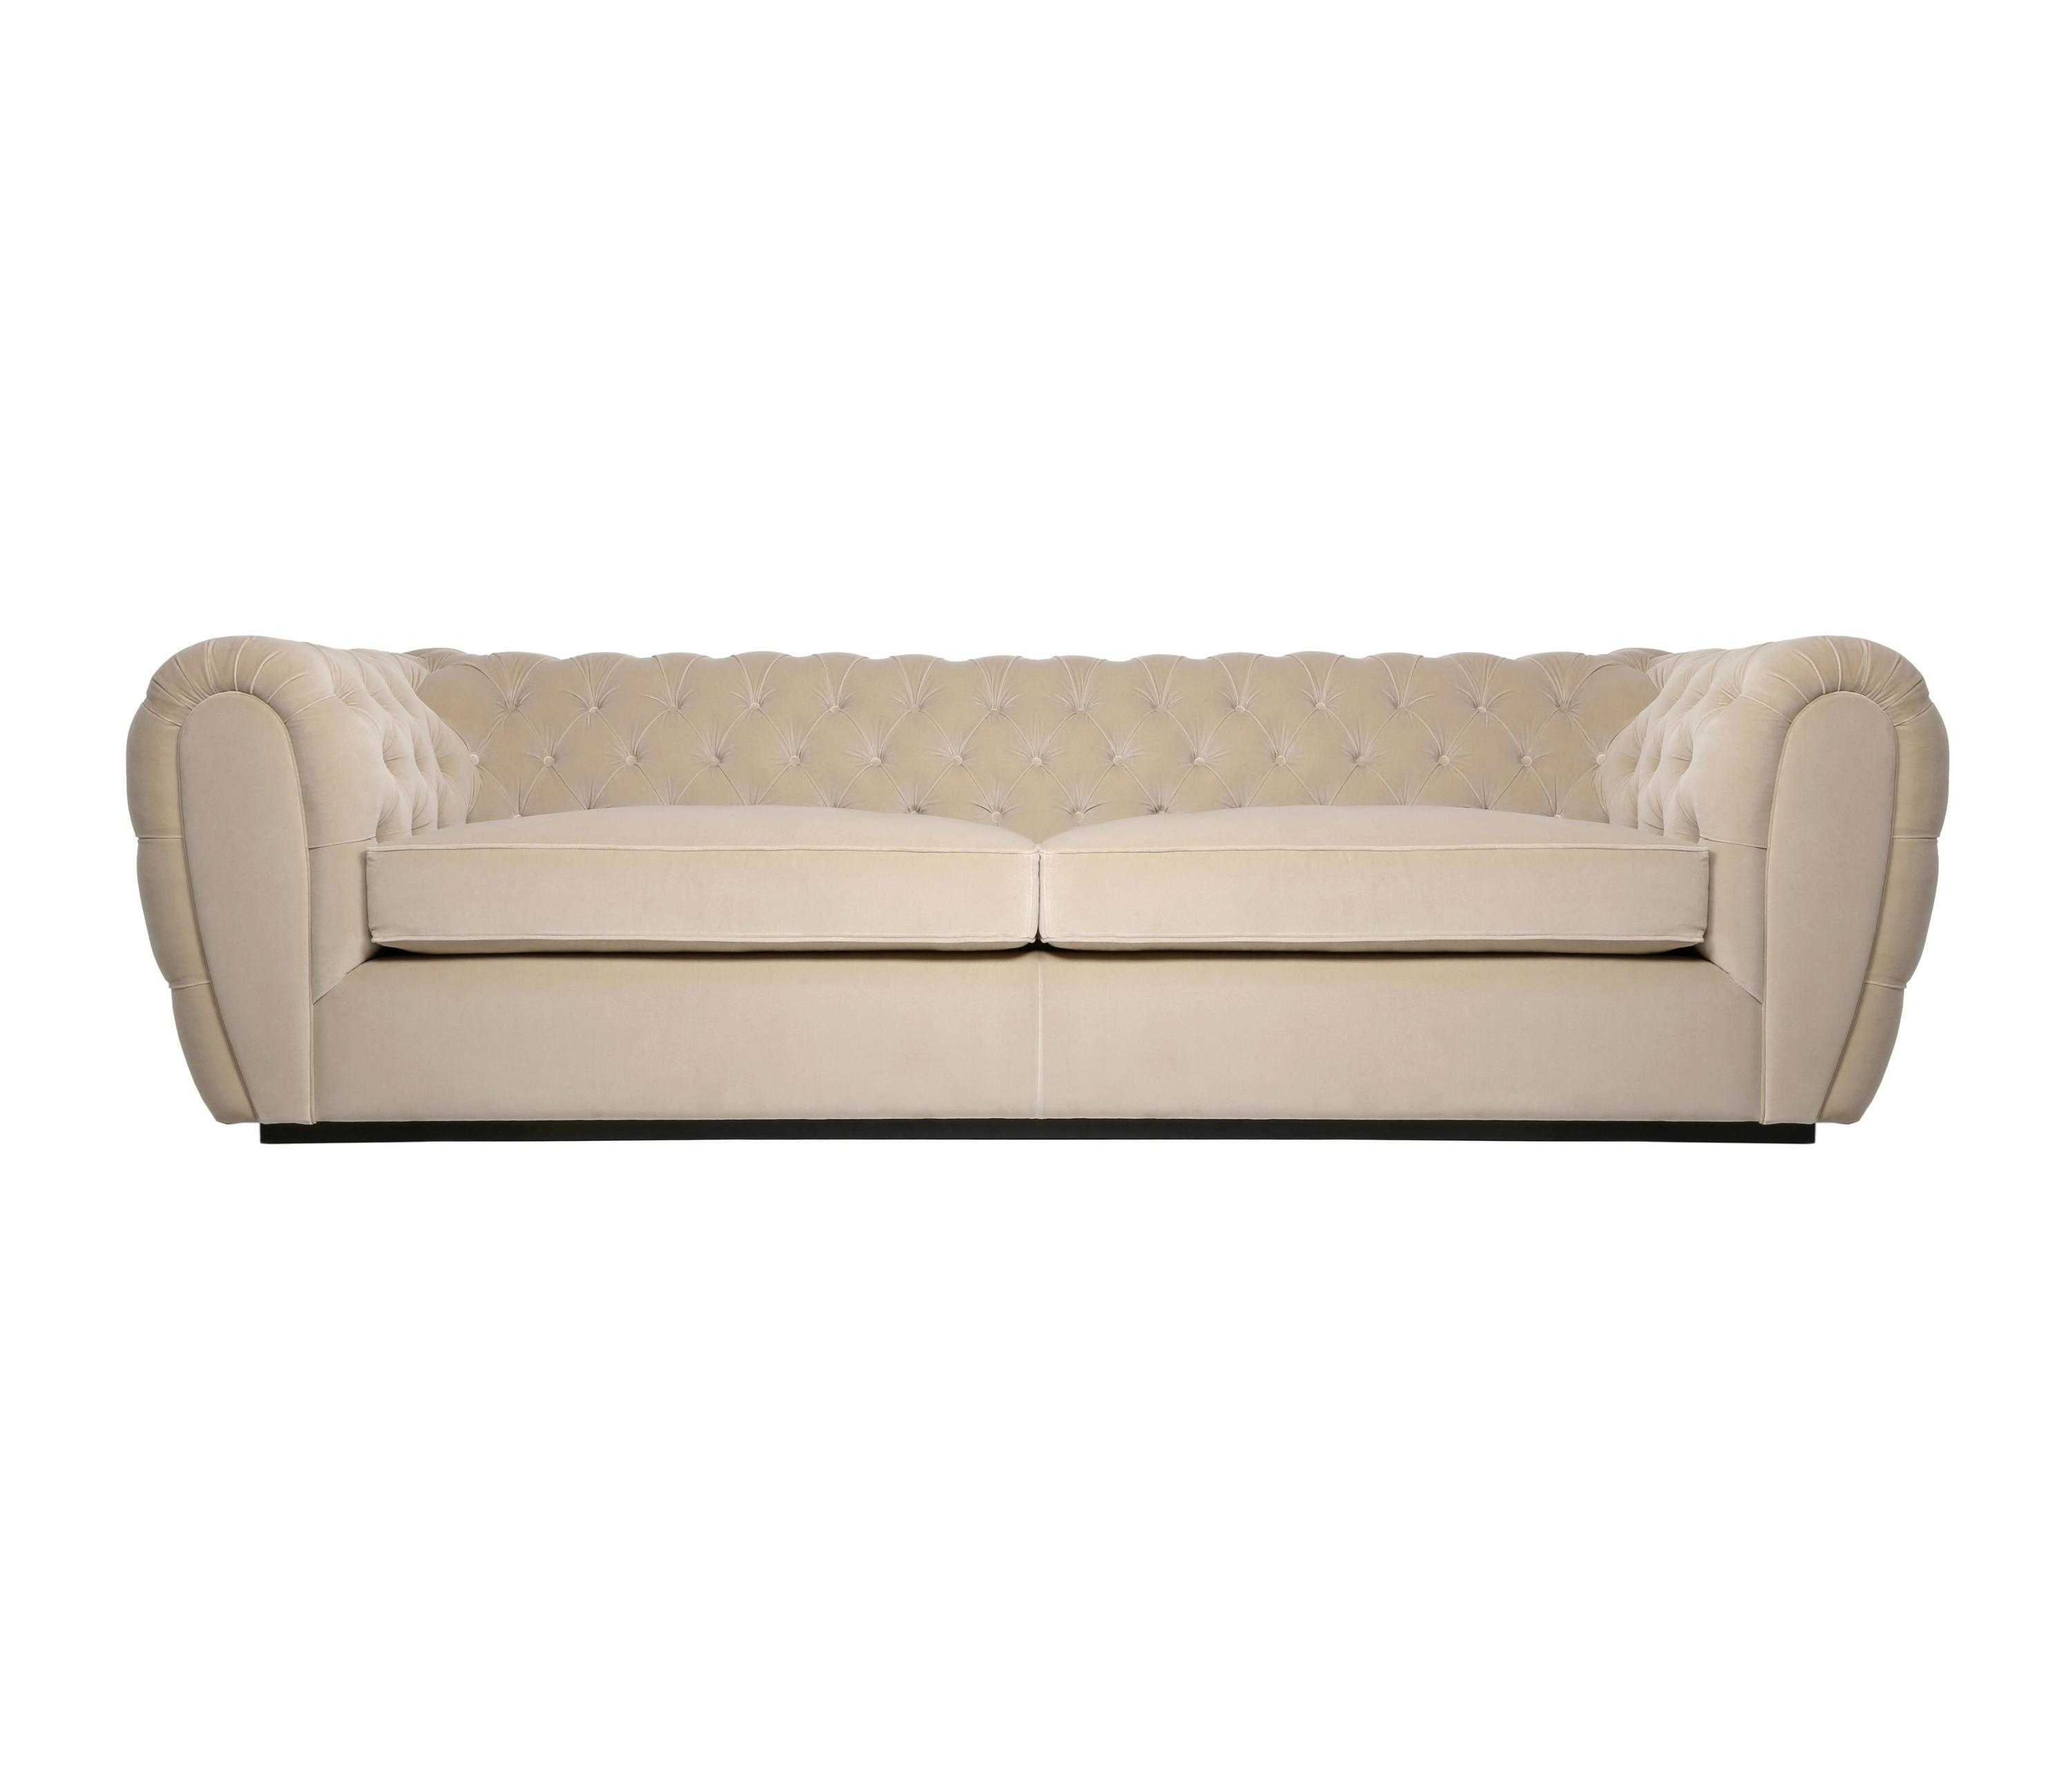 Windsor Sofa – Lounge Sofas From The Sofa & Chair Company Ltd In Windsor Sofas (Image 16 of 20)